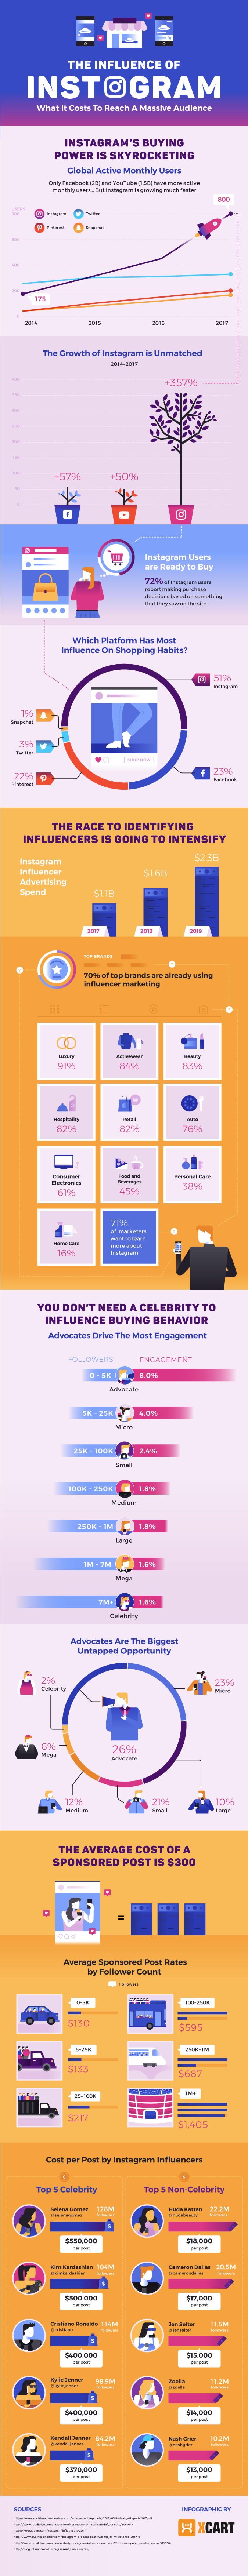 The Influence of Instagram - #infographic